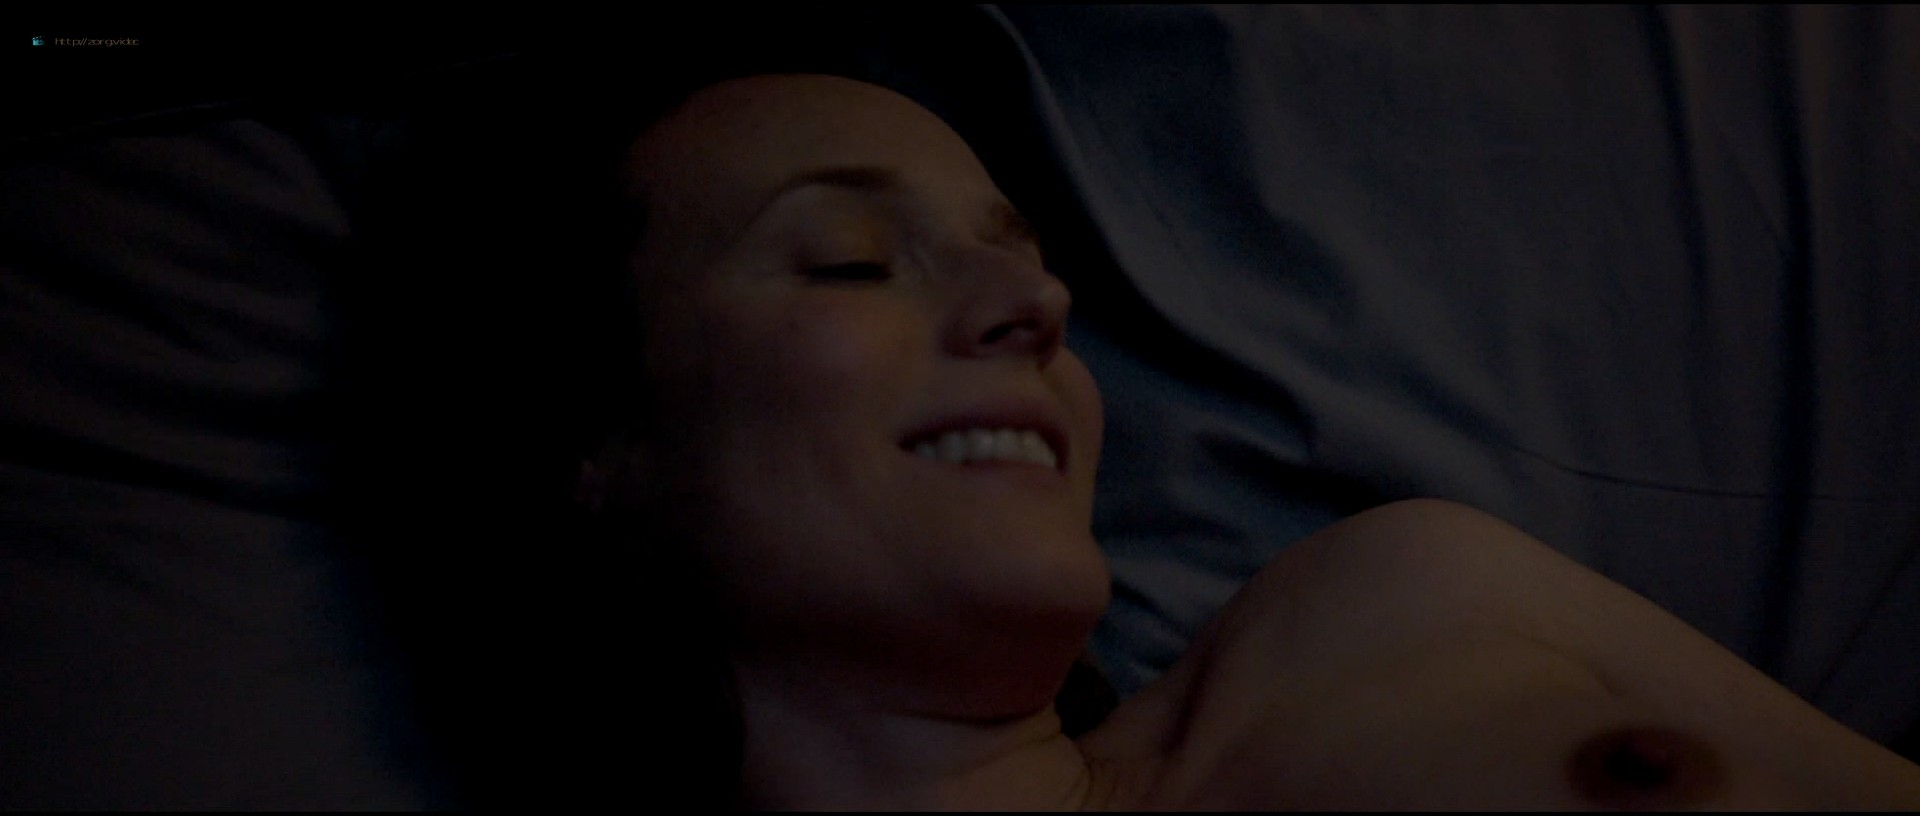 Diane Kruger nude topless and sex- The Operative (2019) HD 1080p Web (3)